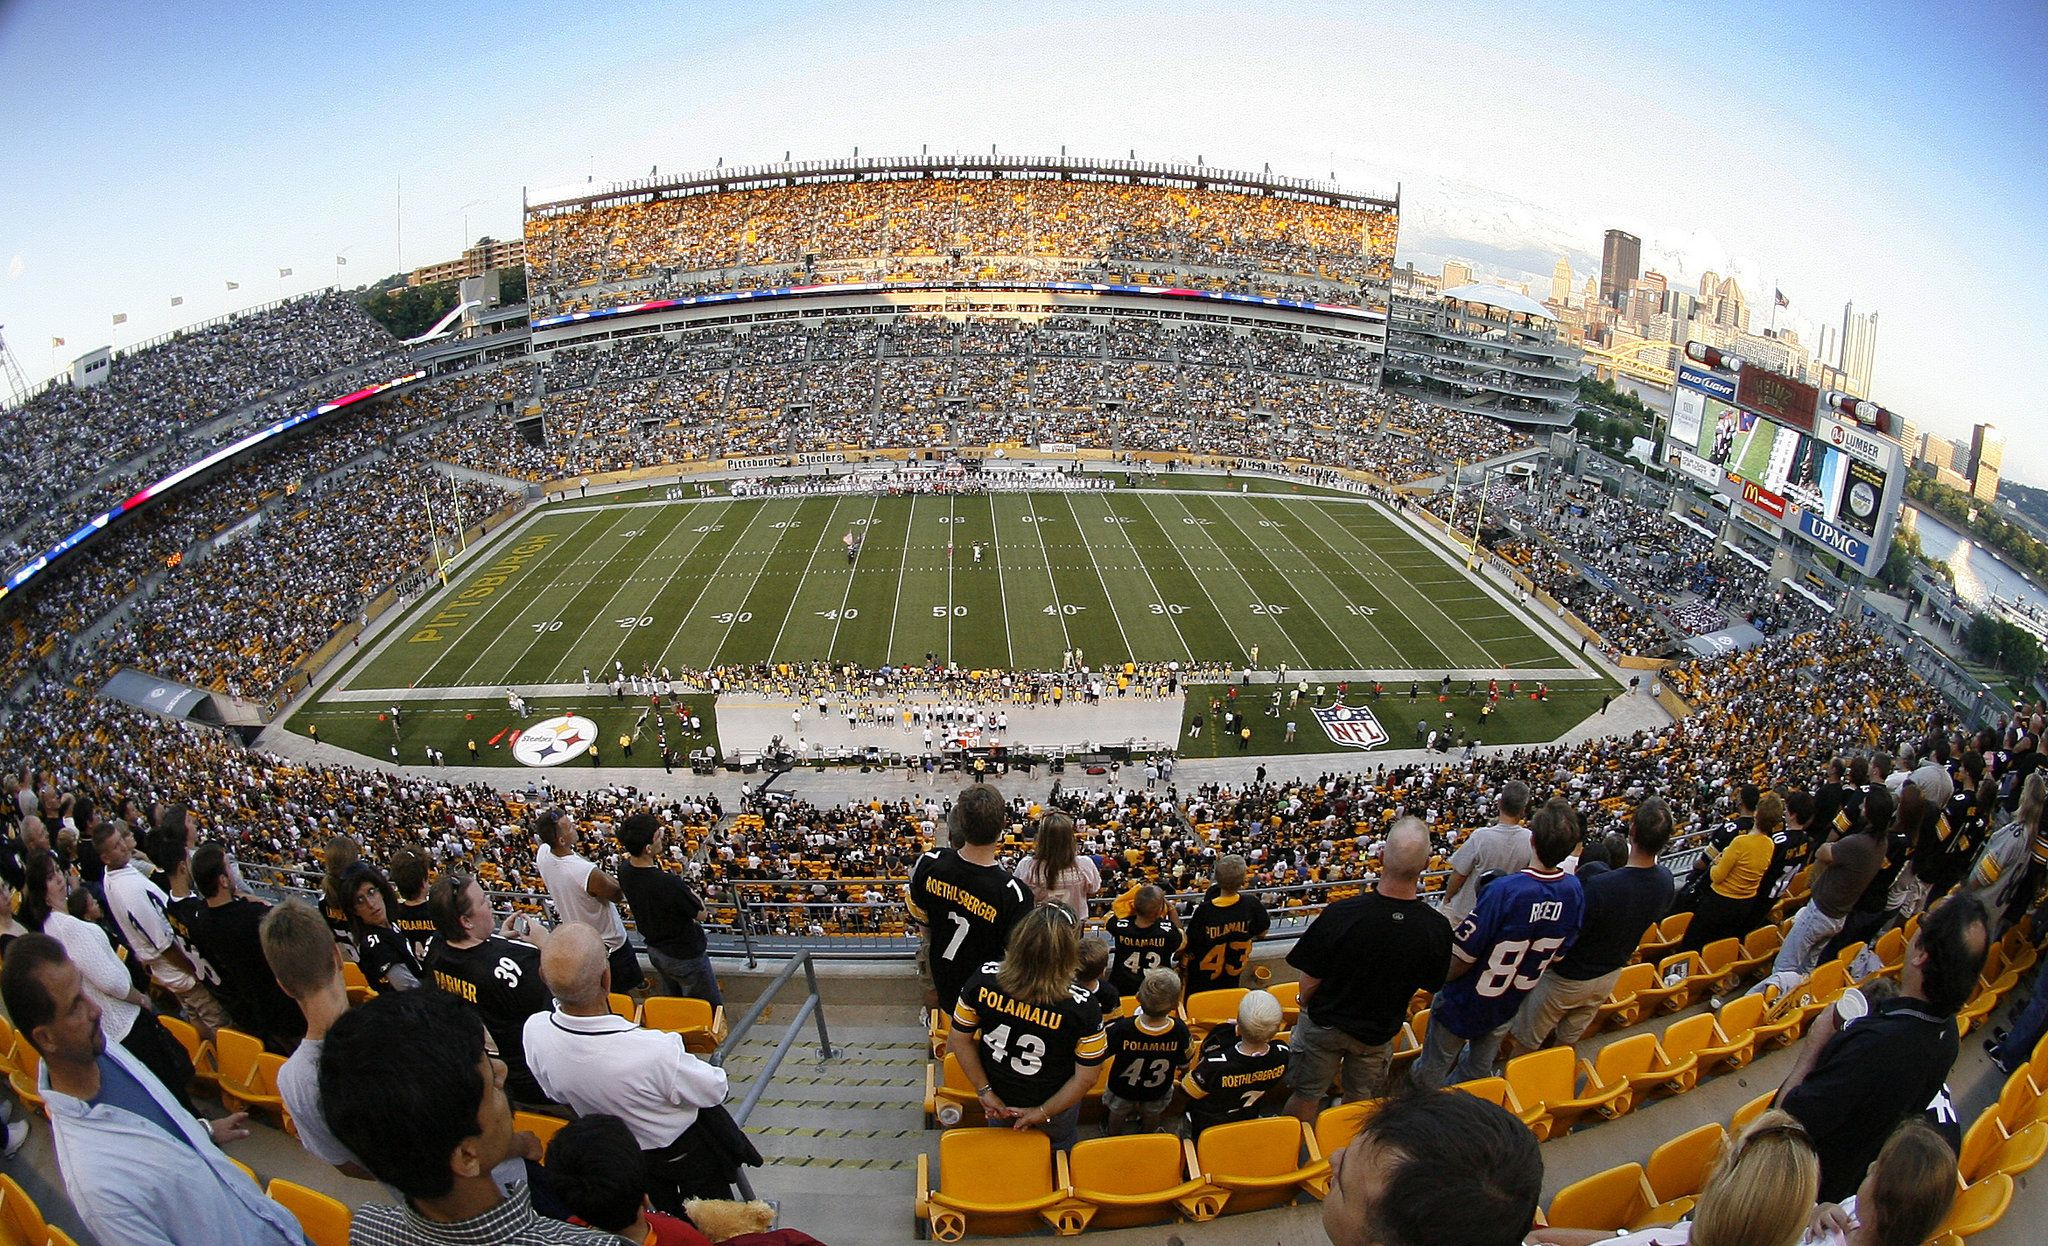 Heinz Field Home To The Pittsburgh Steelers And University Of Pittsburgh Panthers Football Teams Heinz Field Pittsburgh Steelers Wallpaper Steelers Football